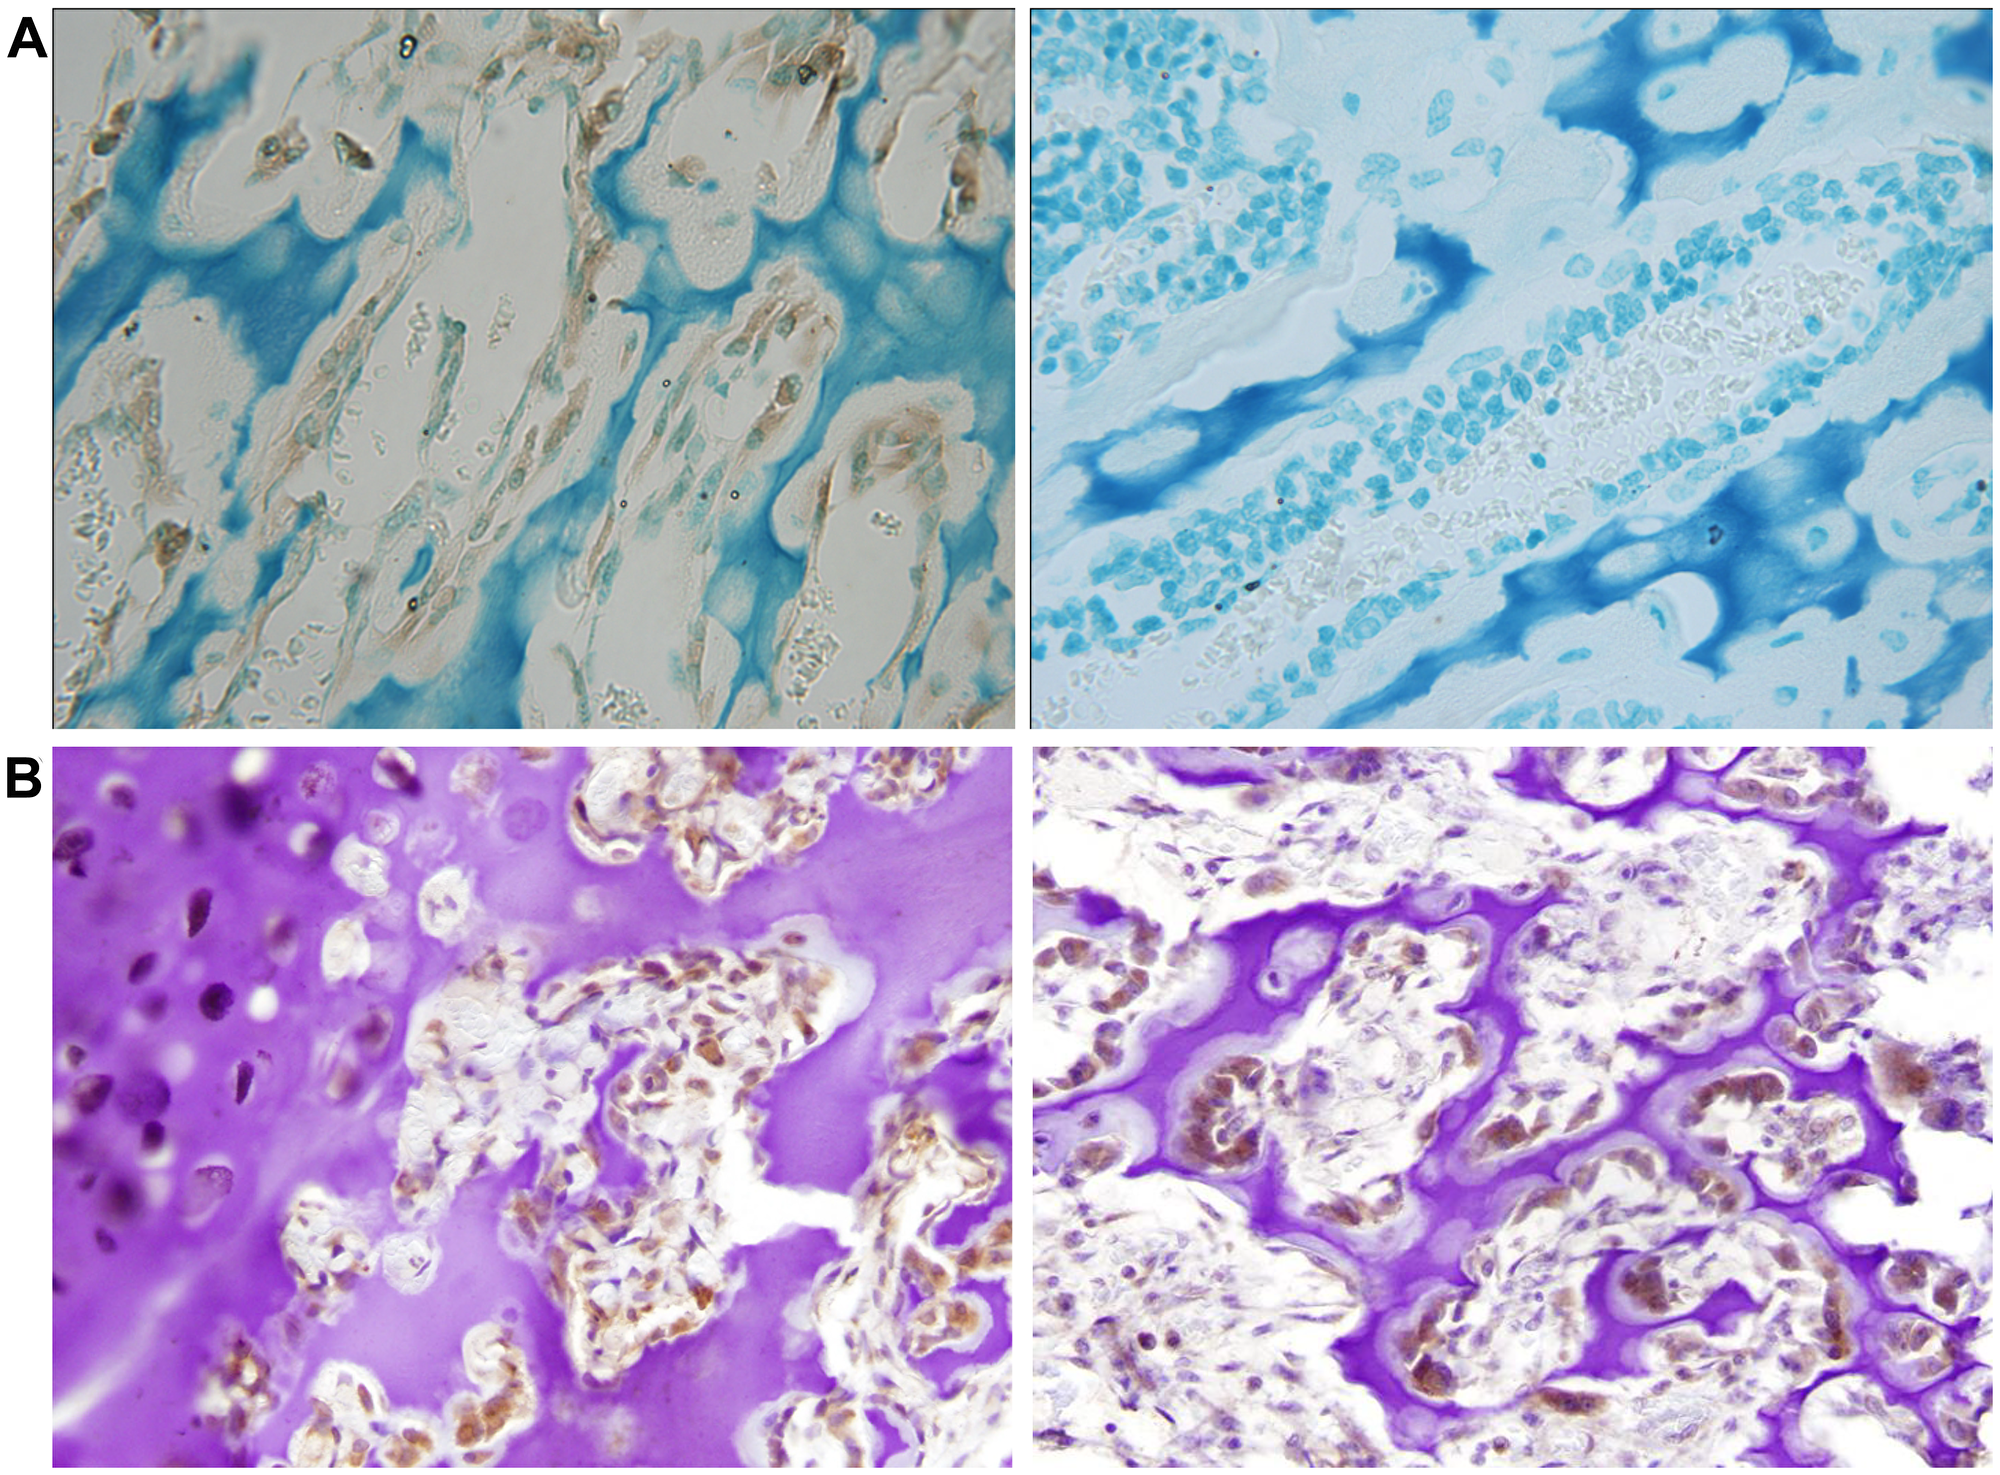 Neuronatin protein expression is detectable in normal bone and cartilage tissues.